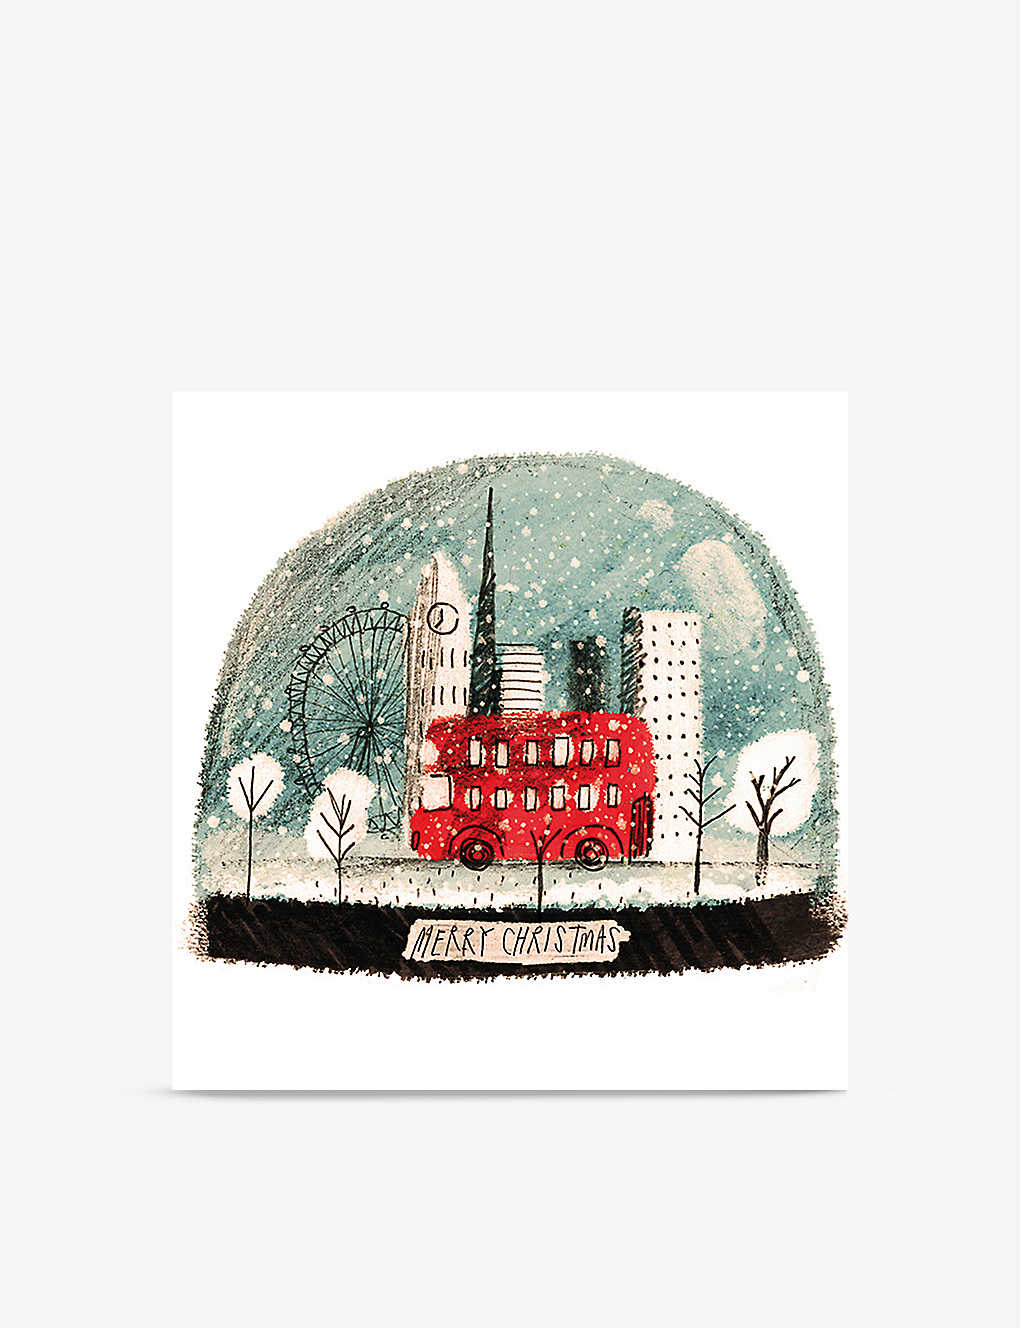 MUSEUMS + GALLERIES: Box of 8 London Snow Globe Christmas greeting cards